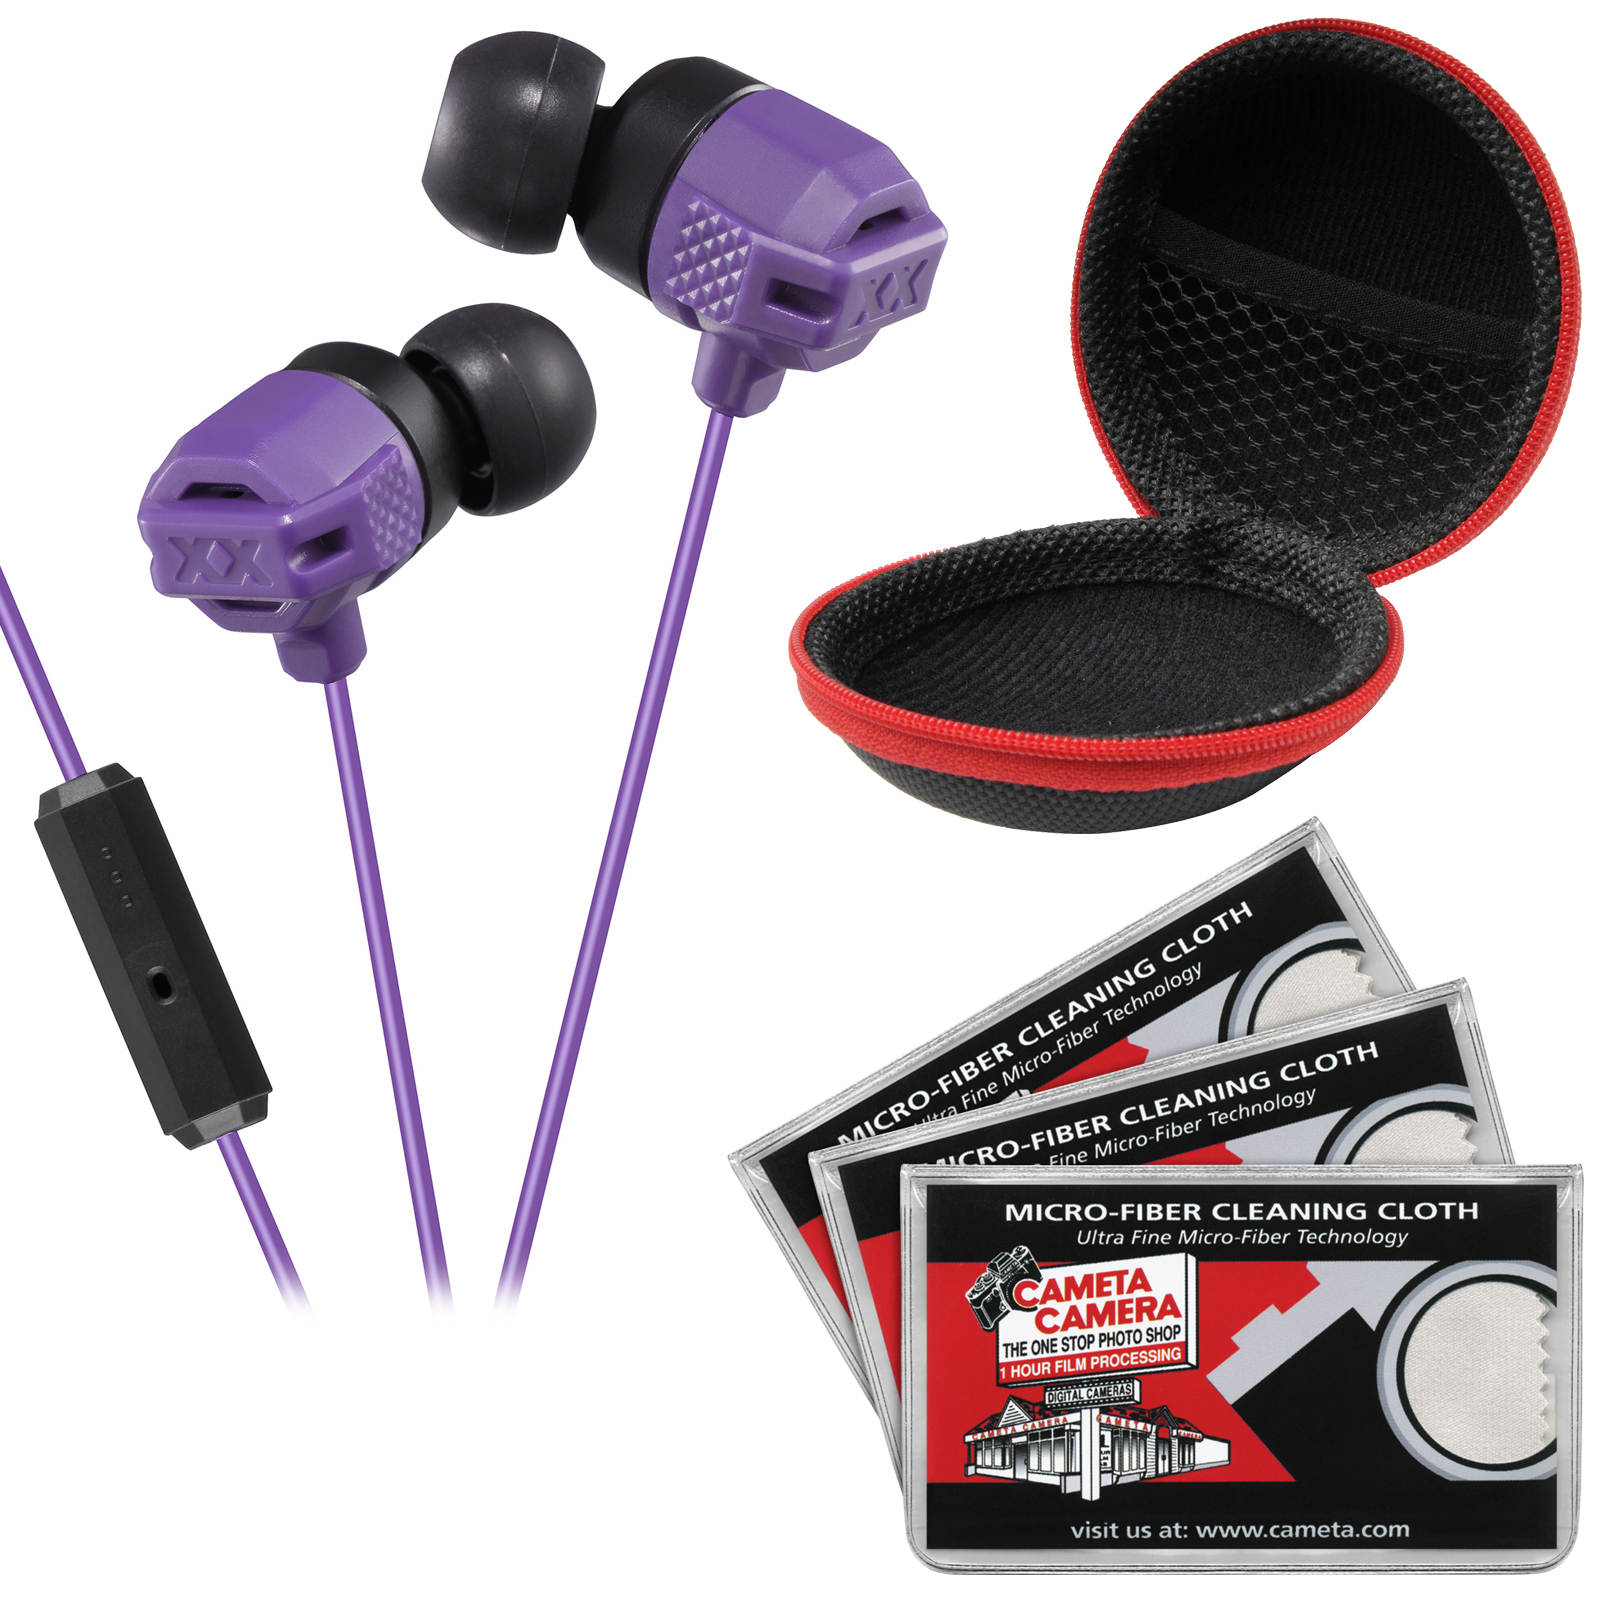 JVC HA-FR202 XTREME XPLOSIVES Inner Ear Headphones with Remote & Mic (Violet) with Case & 3 Microfiber Cloths